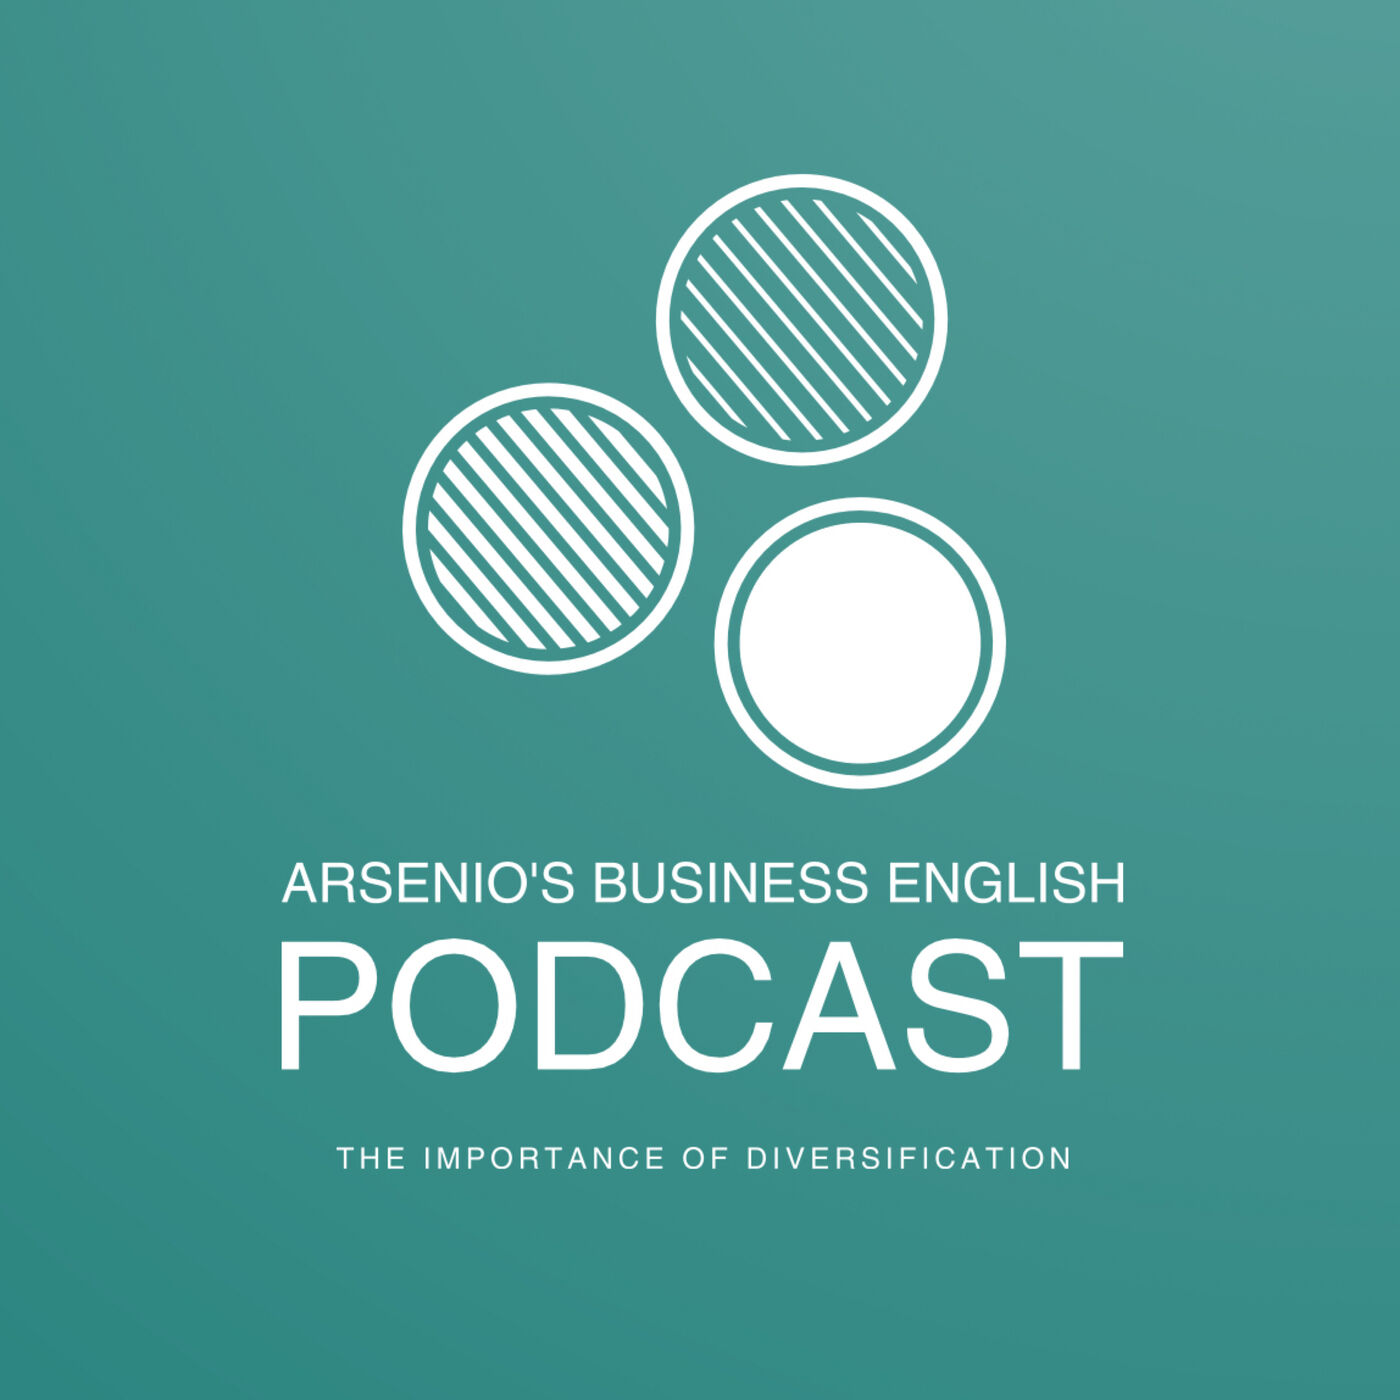 Arsenio's Business English Podcast | Investment | The Importance of Diversification